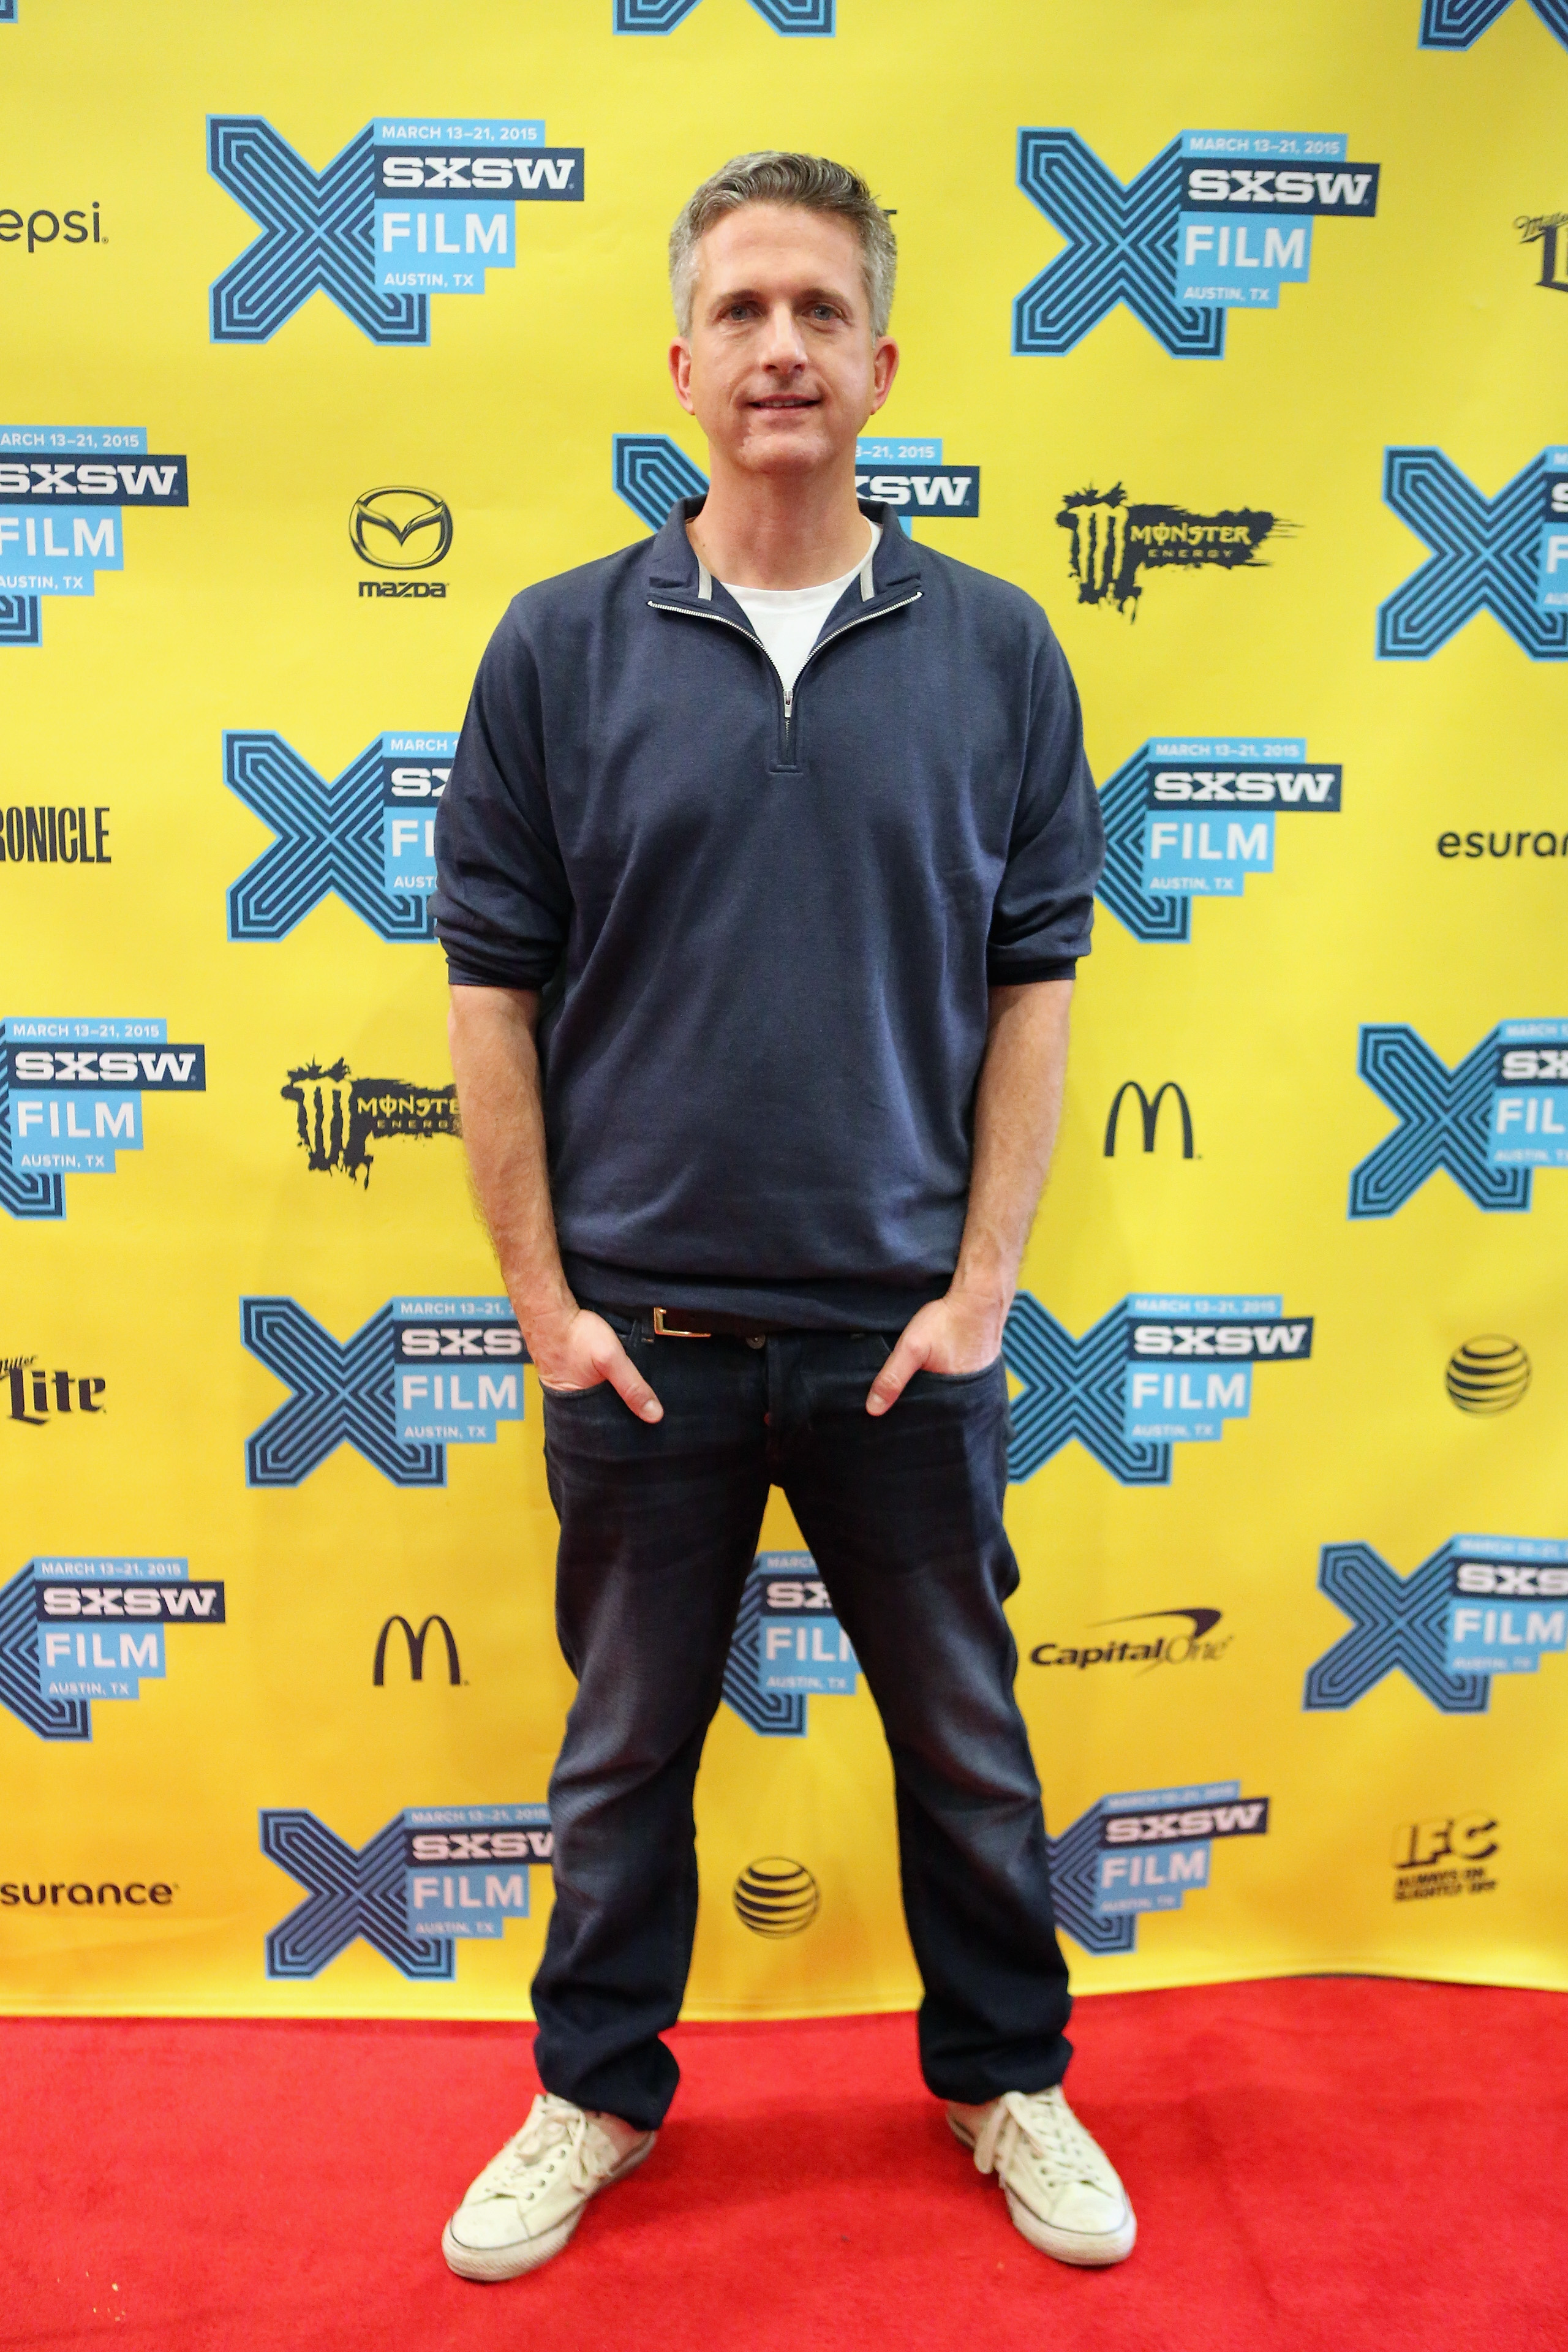 Bill Simmons attends the premiere of  Son of the Congo  during the 2015 SXSW Music, Film + Interactive Festival at Austin Convention Center in Austin on Mar. 14, 2015.